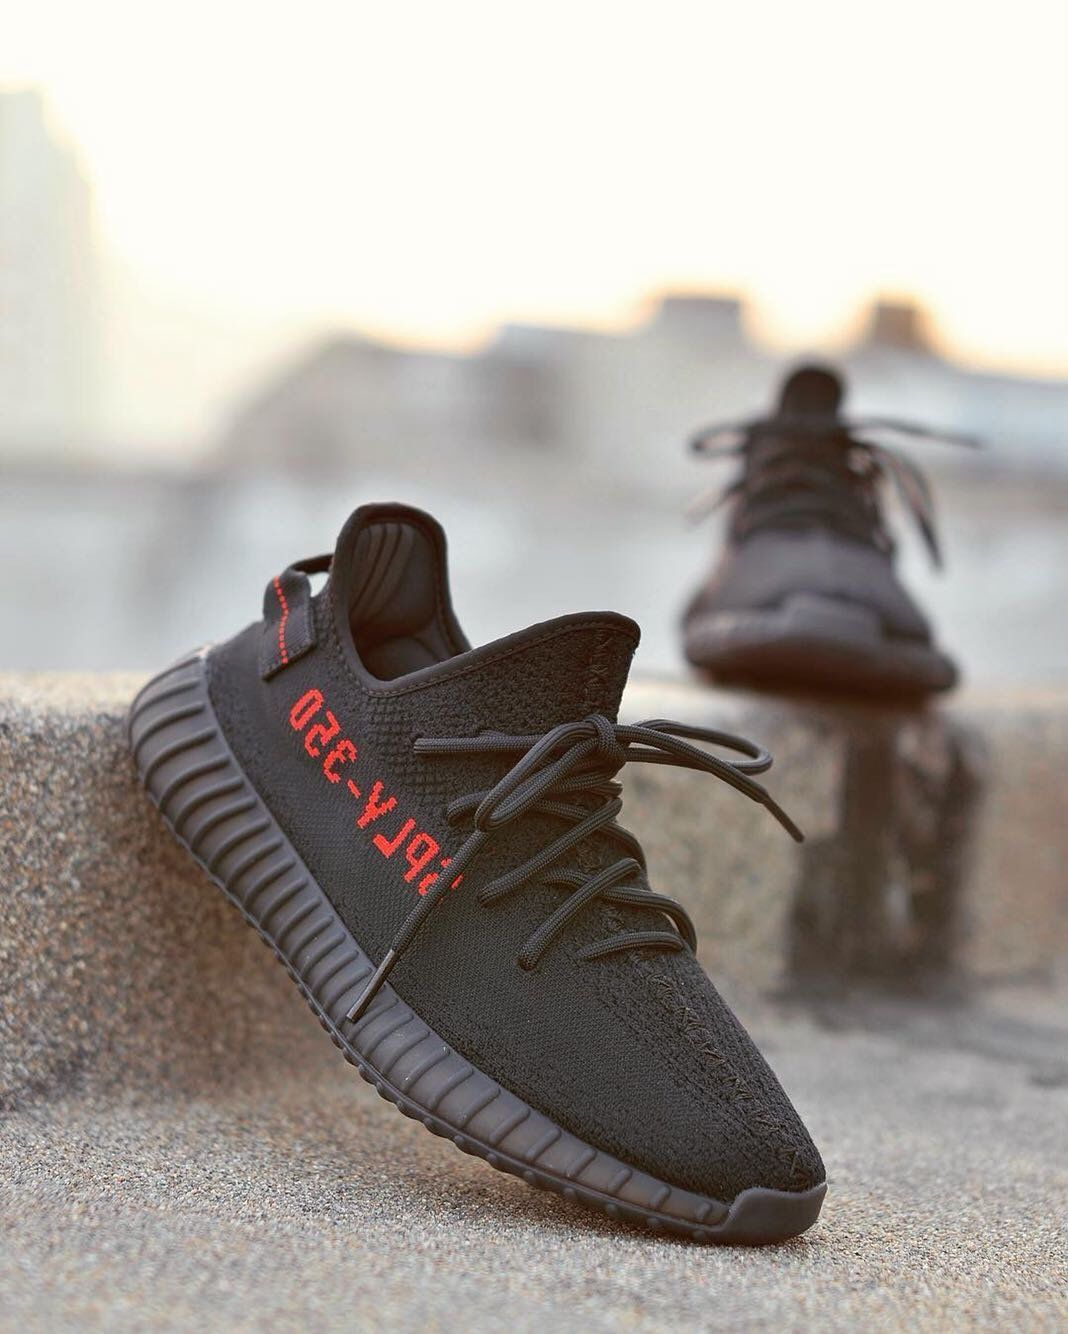 19b292636 Adidas Yeezy 350 V2 new pirate black Red colour way coming soon ...